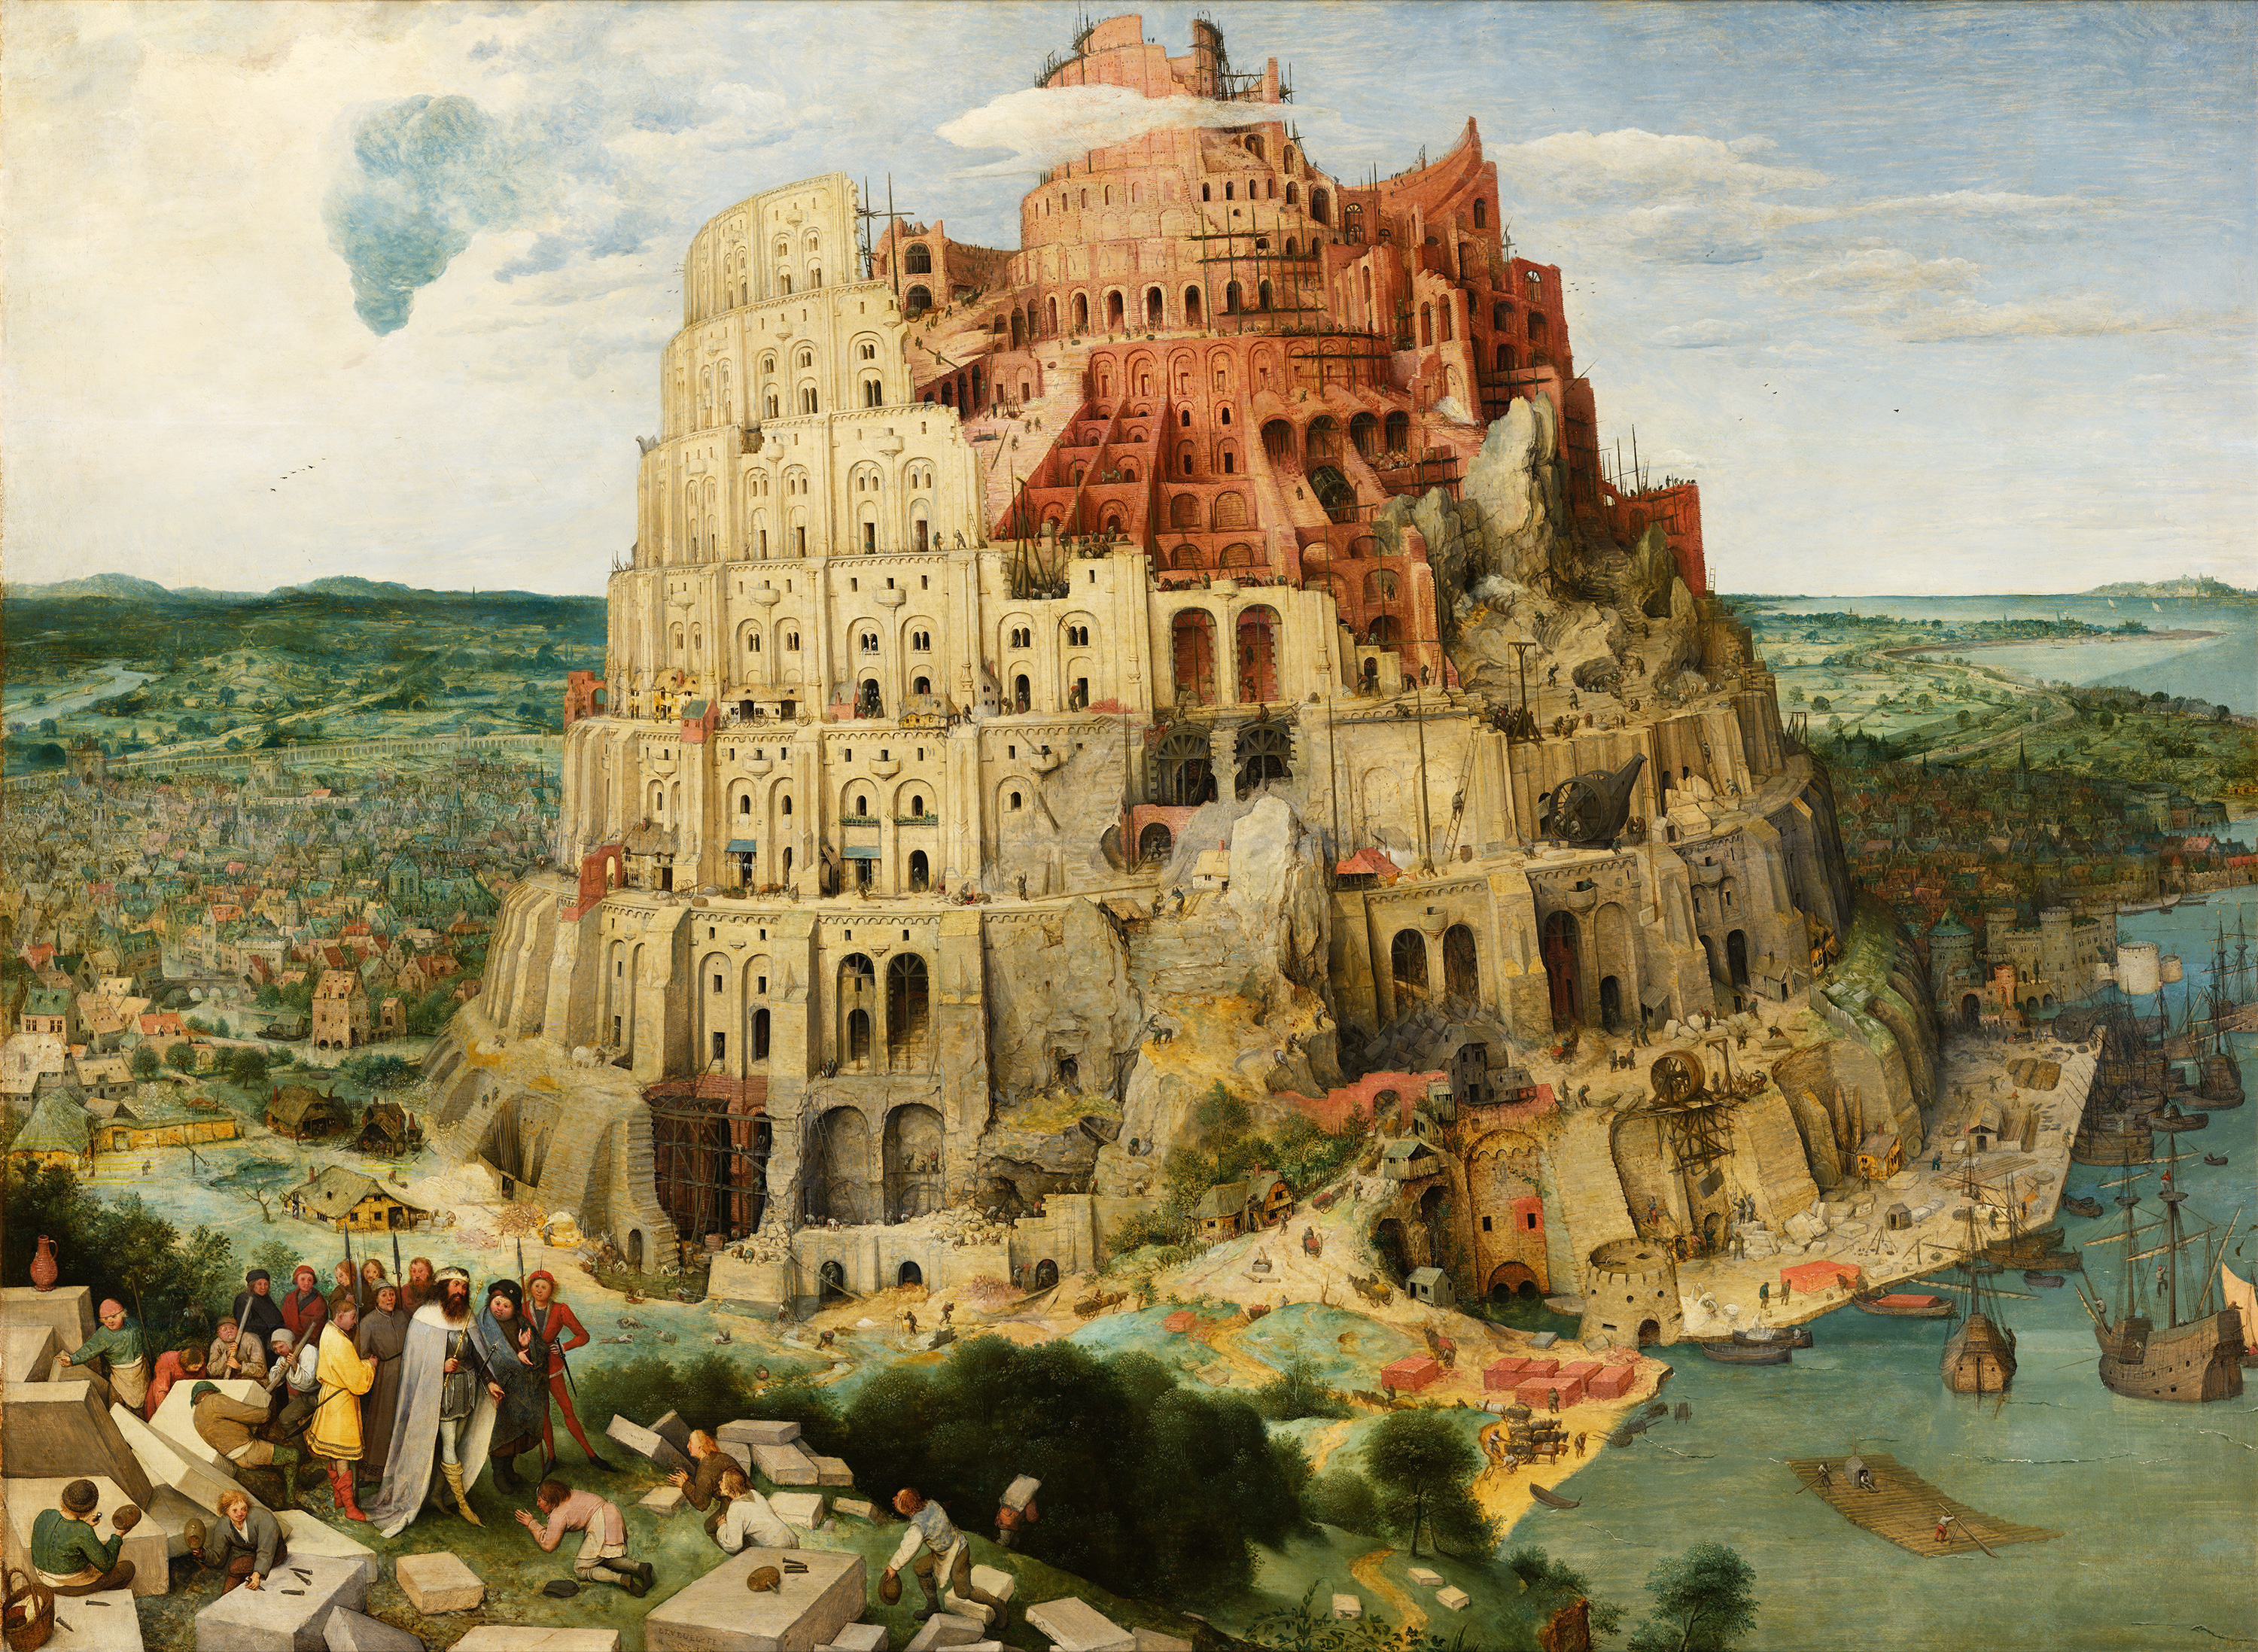 The Tower of Babel, 1563 — Pieter Bruegel the Elder, Kunsthistorisches Museum